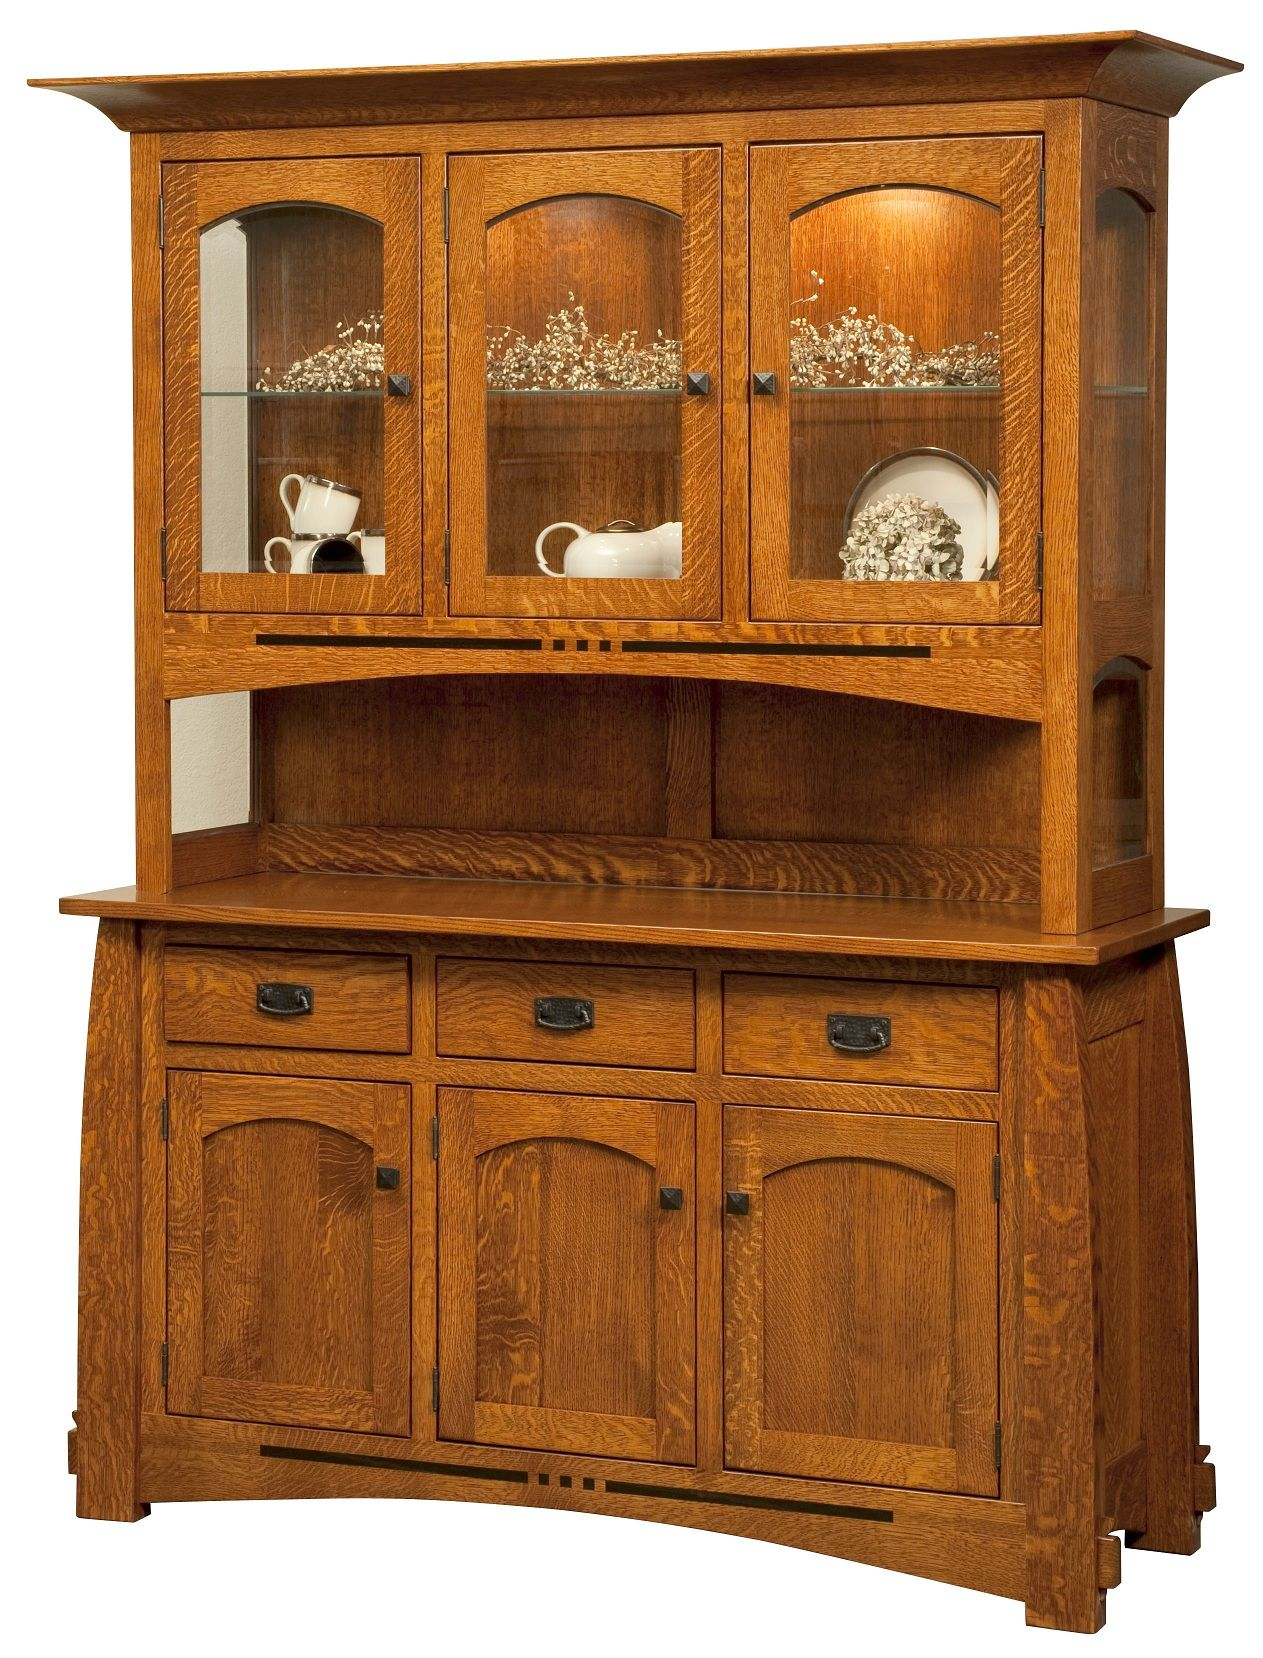 Dining Roomawesome Black Sideboard Cabinet Buffet For Sale Small Interesting Small Hutches Dining Room Inspiration